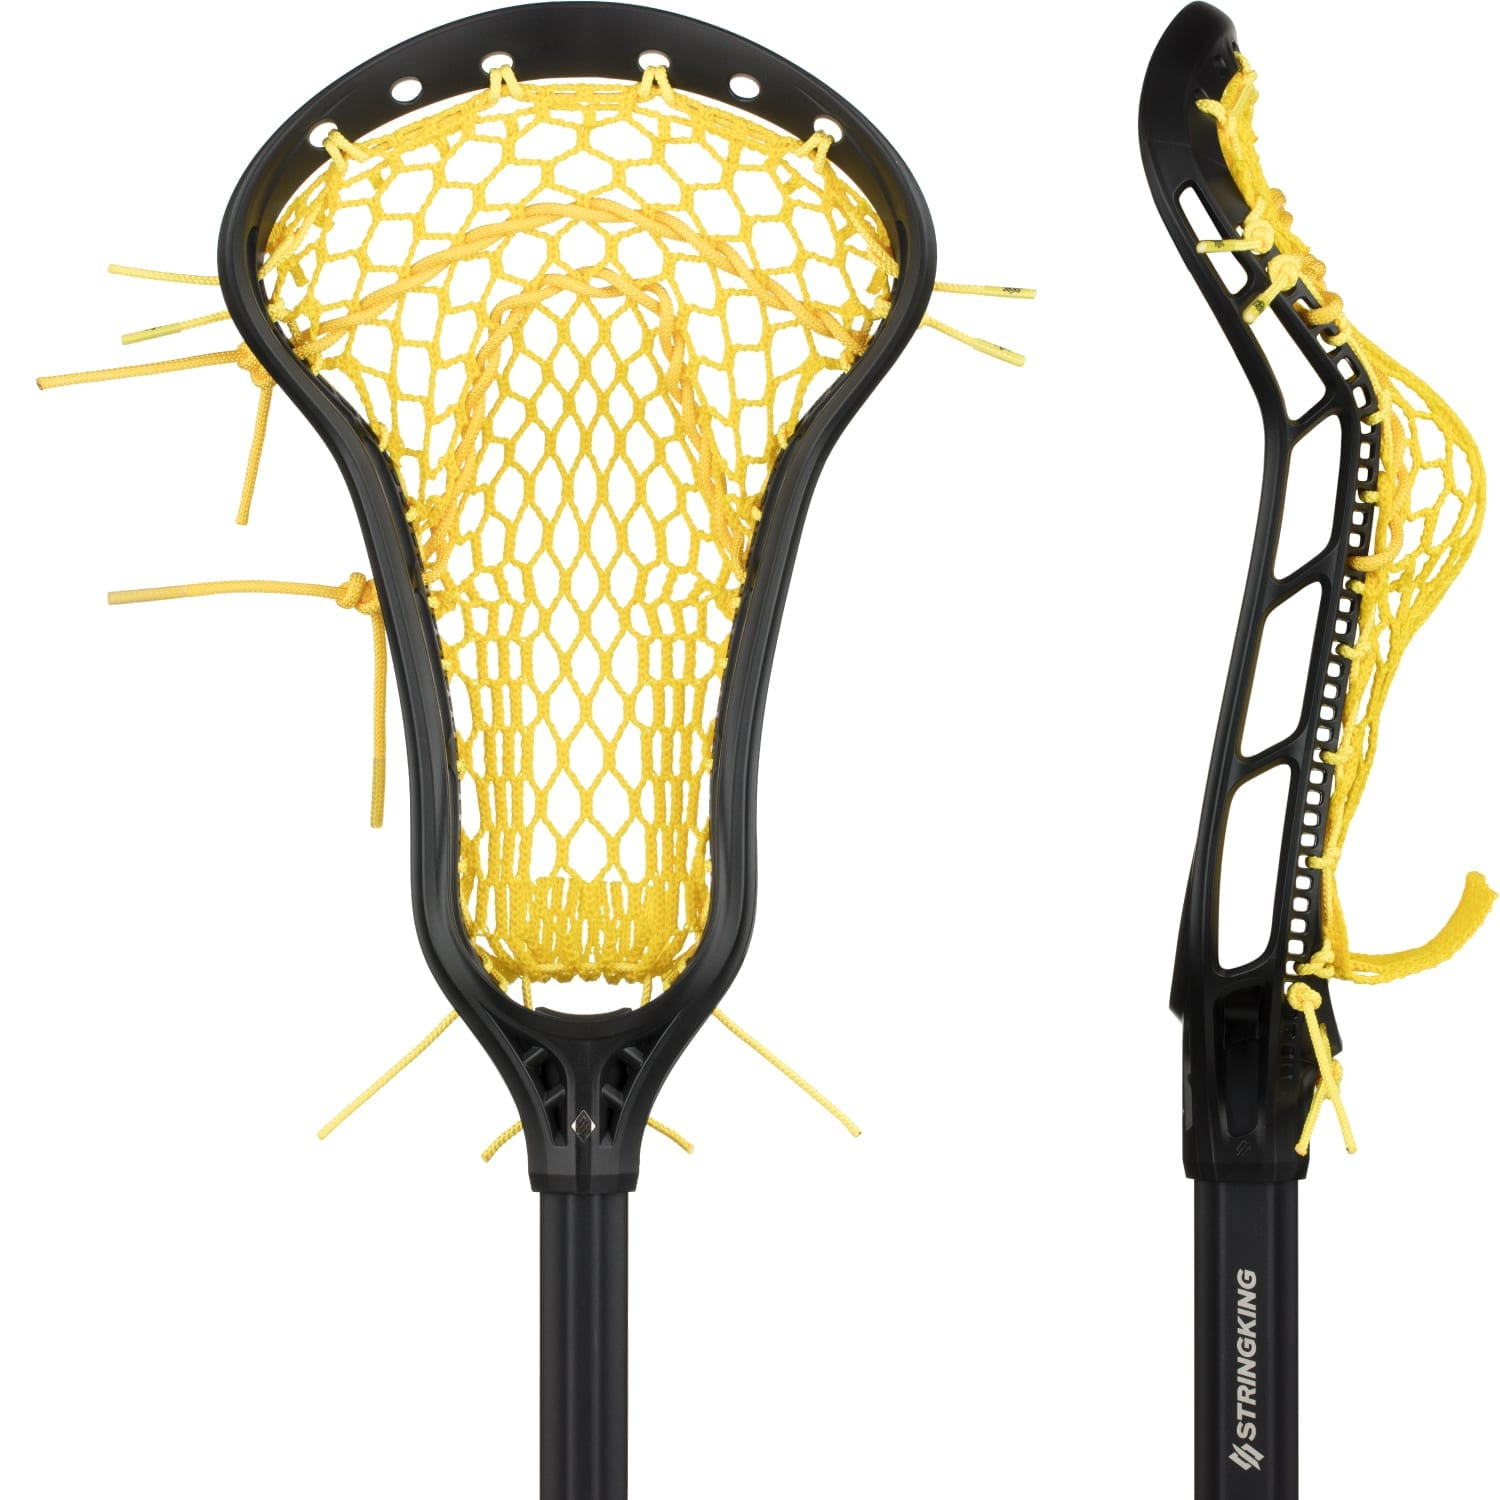 StringKing-Womens-Complete-2-Offense-Front-Side-Strung-YellowBlack1500.jpg